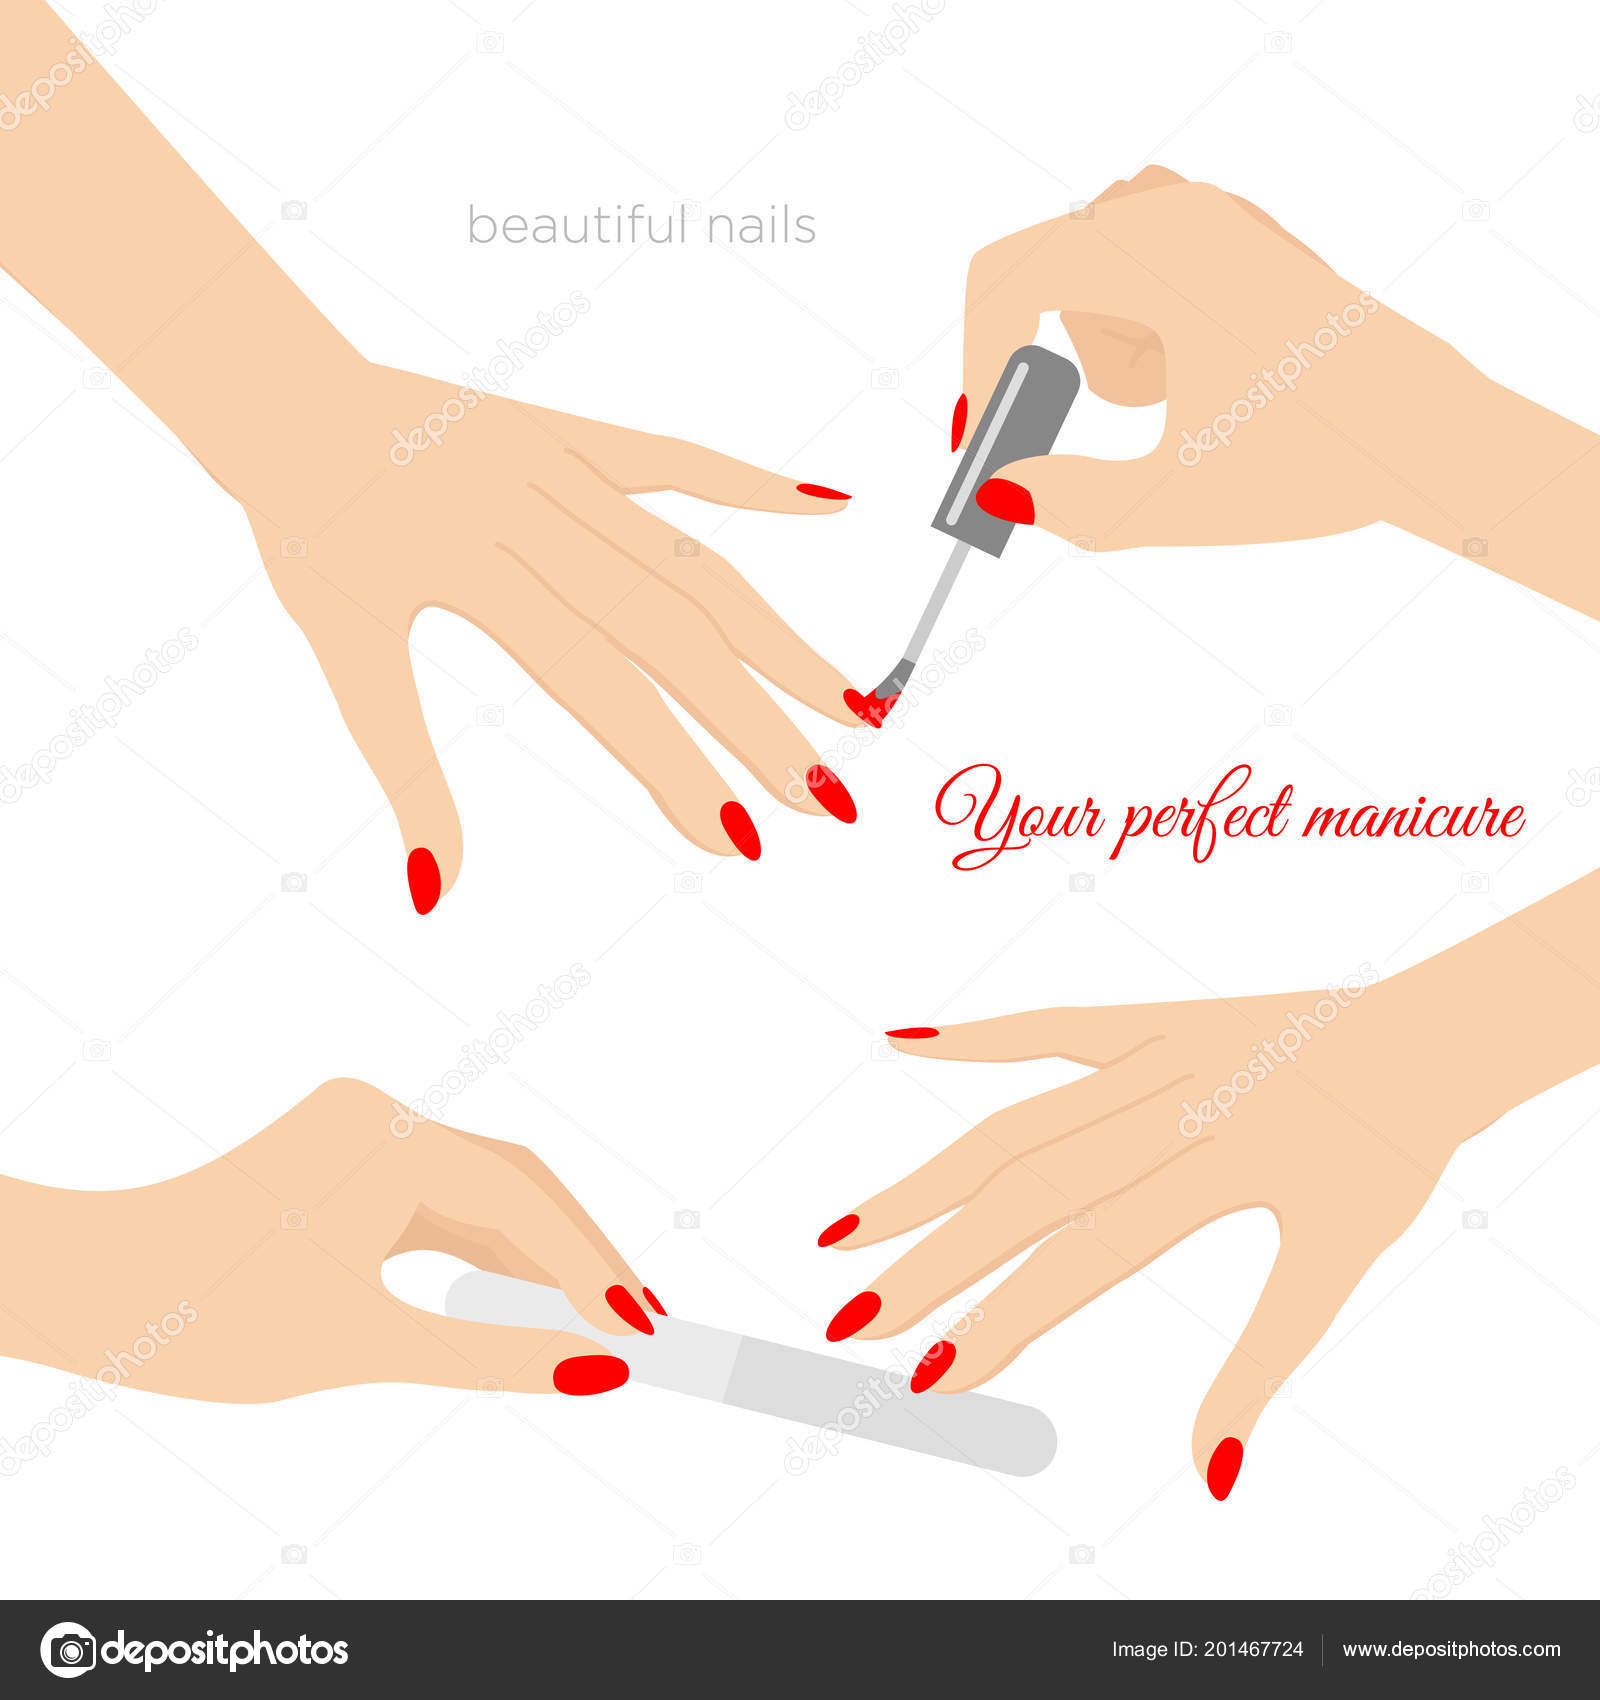 Vector Illustration Of Manicure Concept Nail Health Care Of Hands